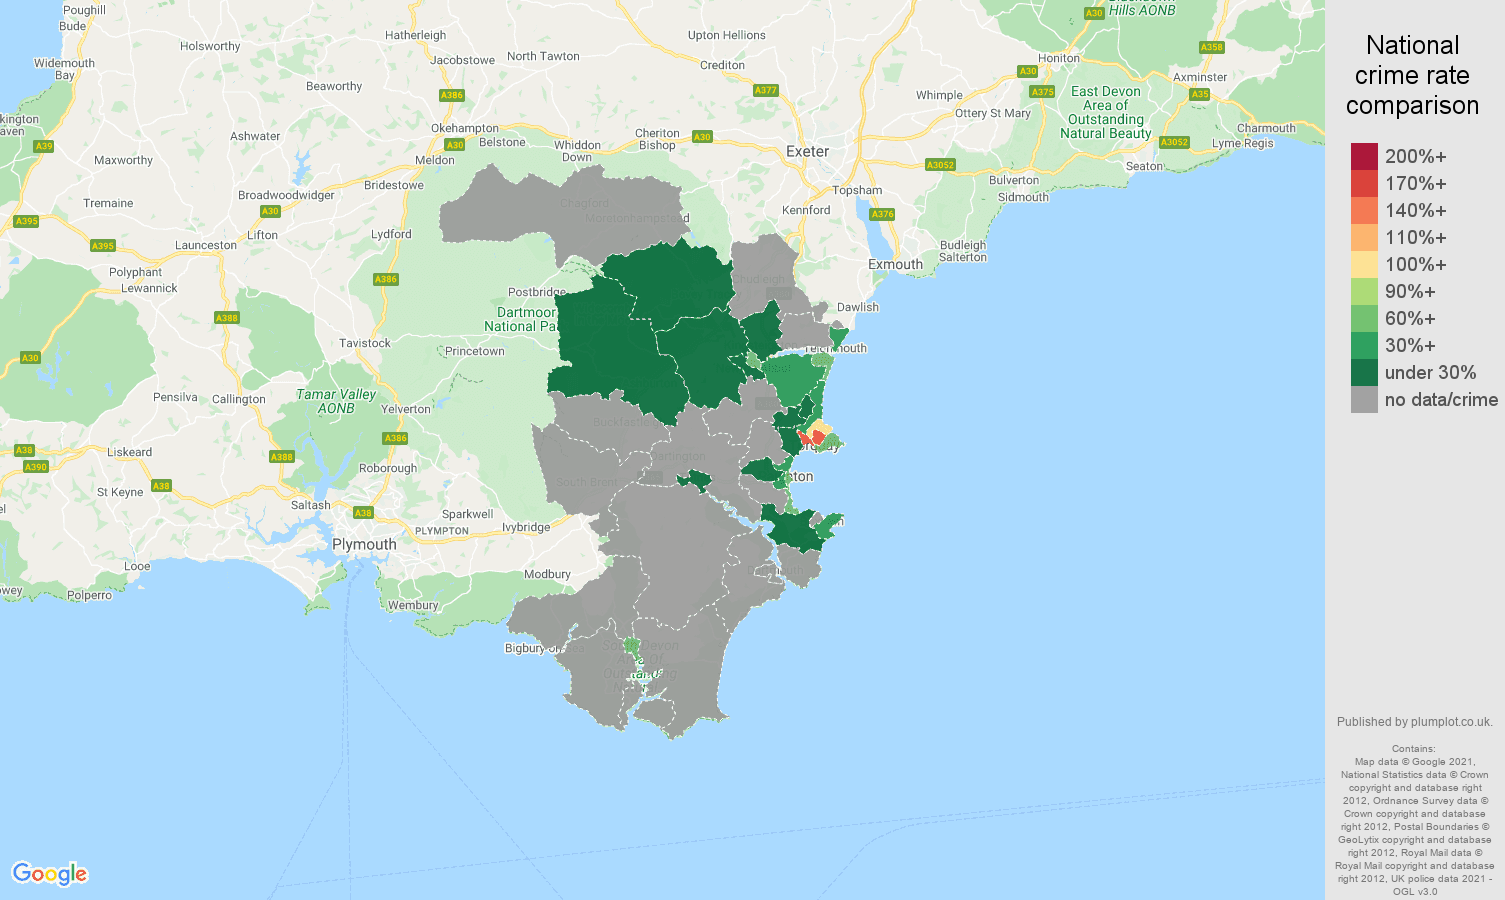 Torquay robbery crime rate comparison map